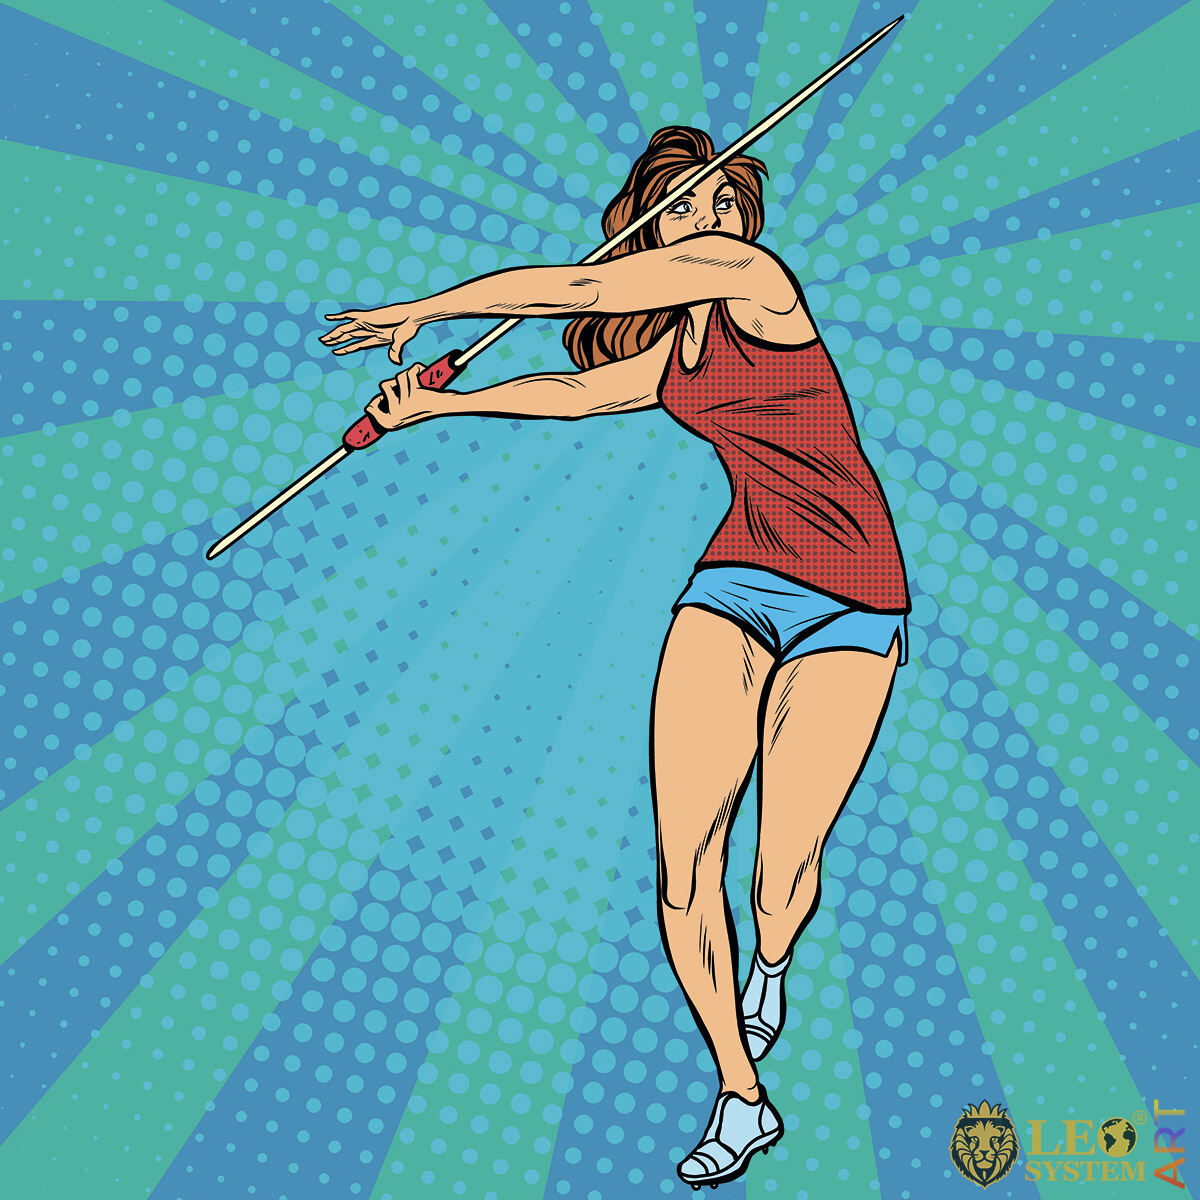 Sportive woman throwing a spear